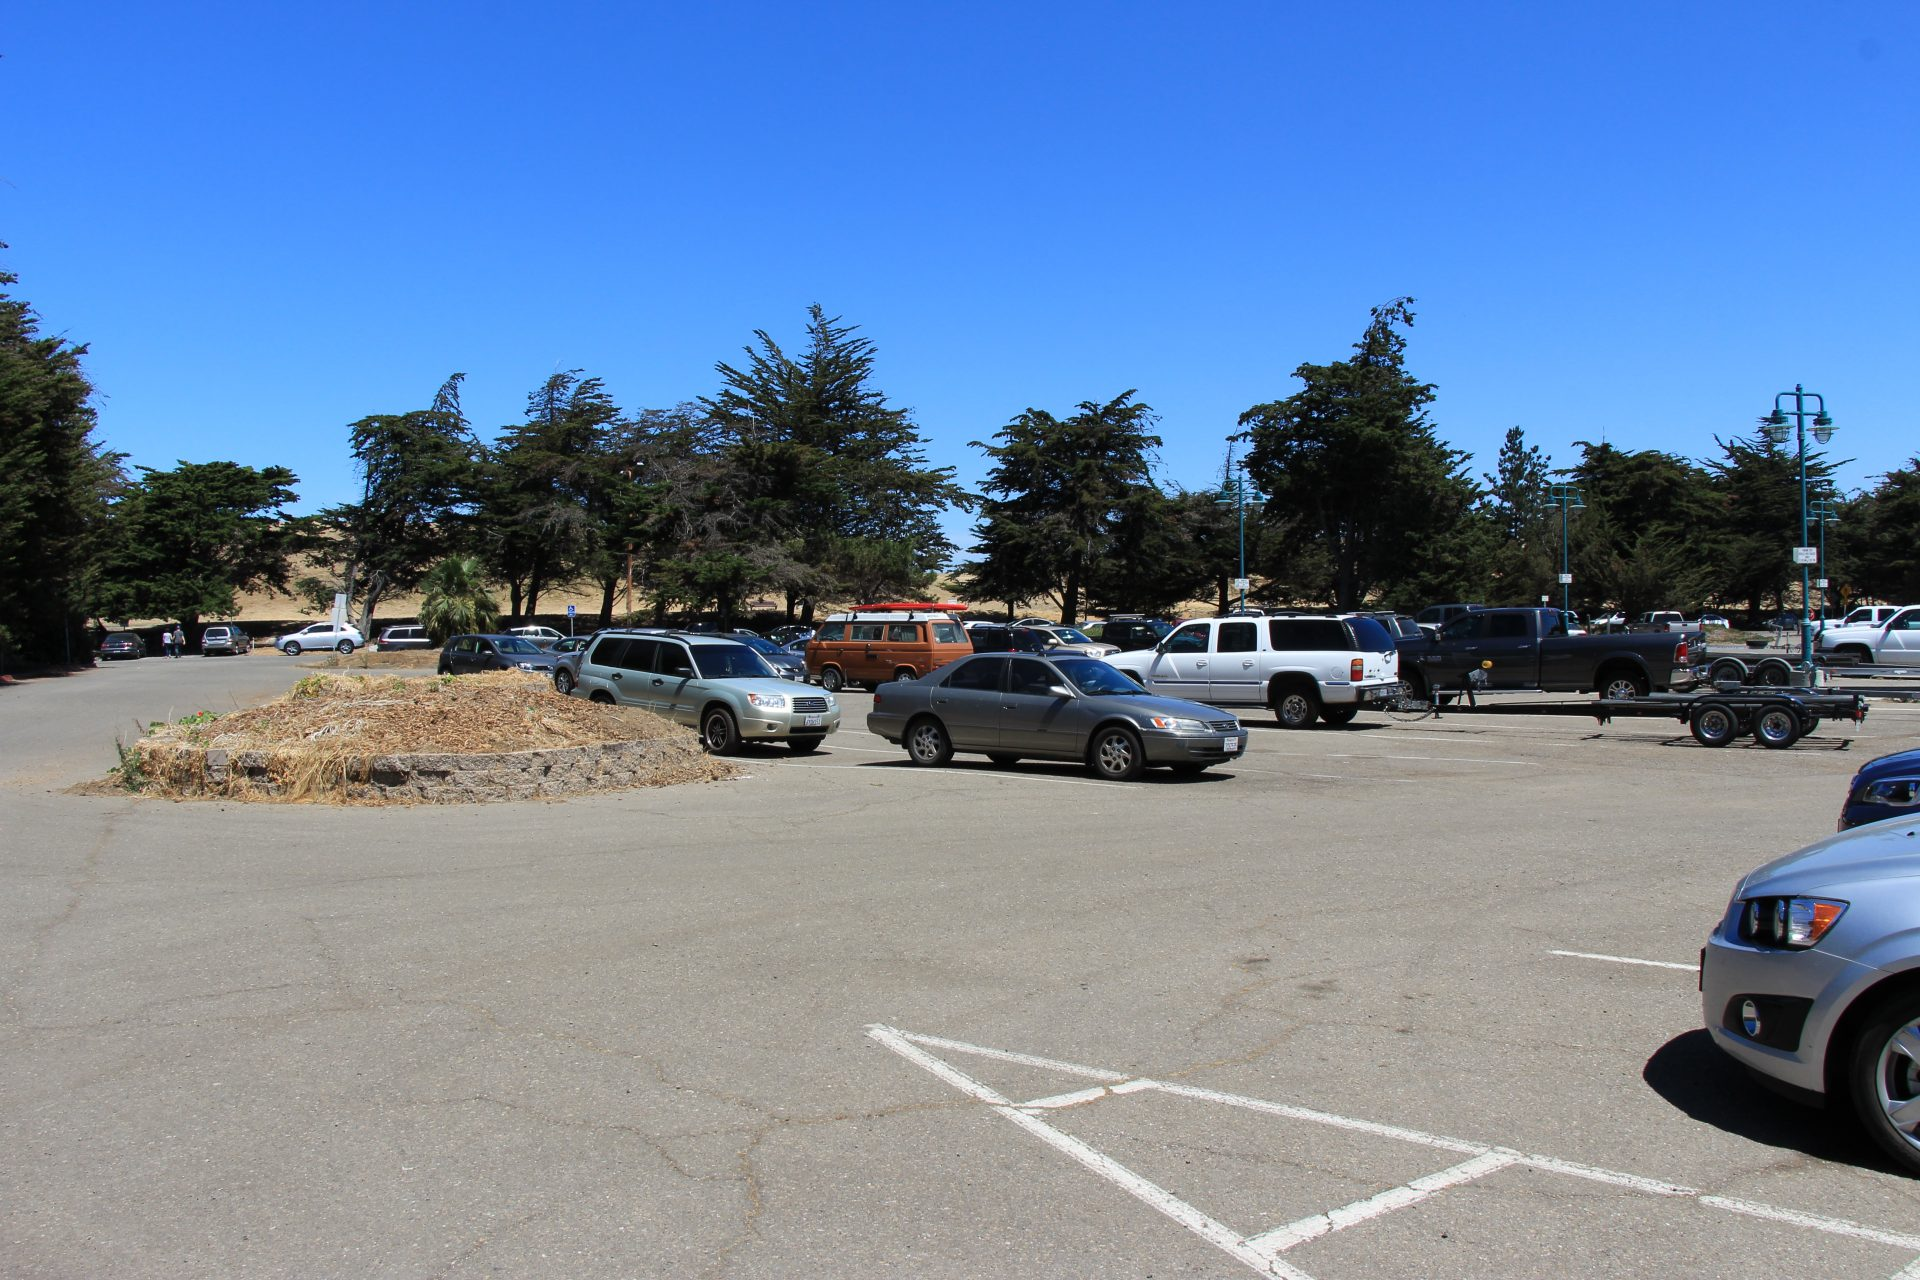 Scattered cars in paved parking lot